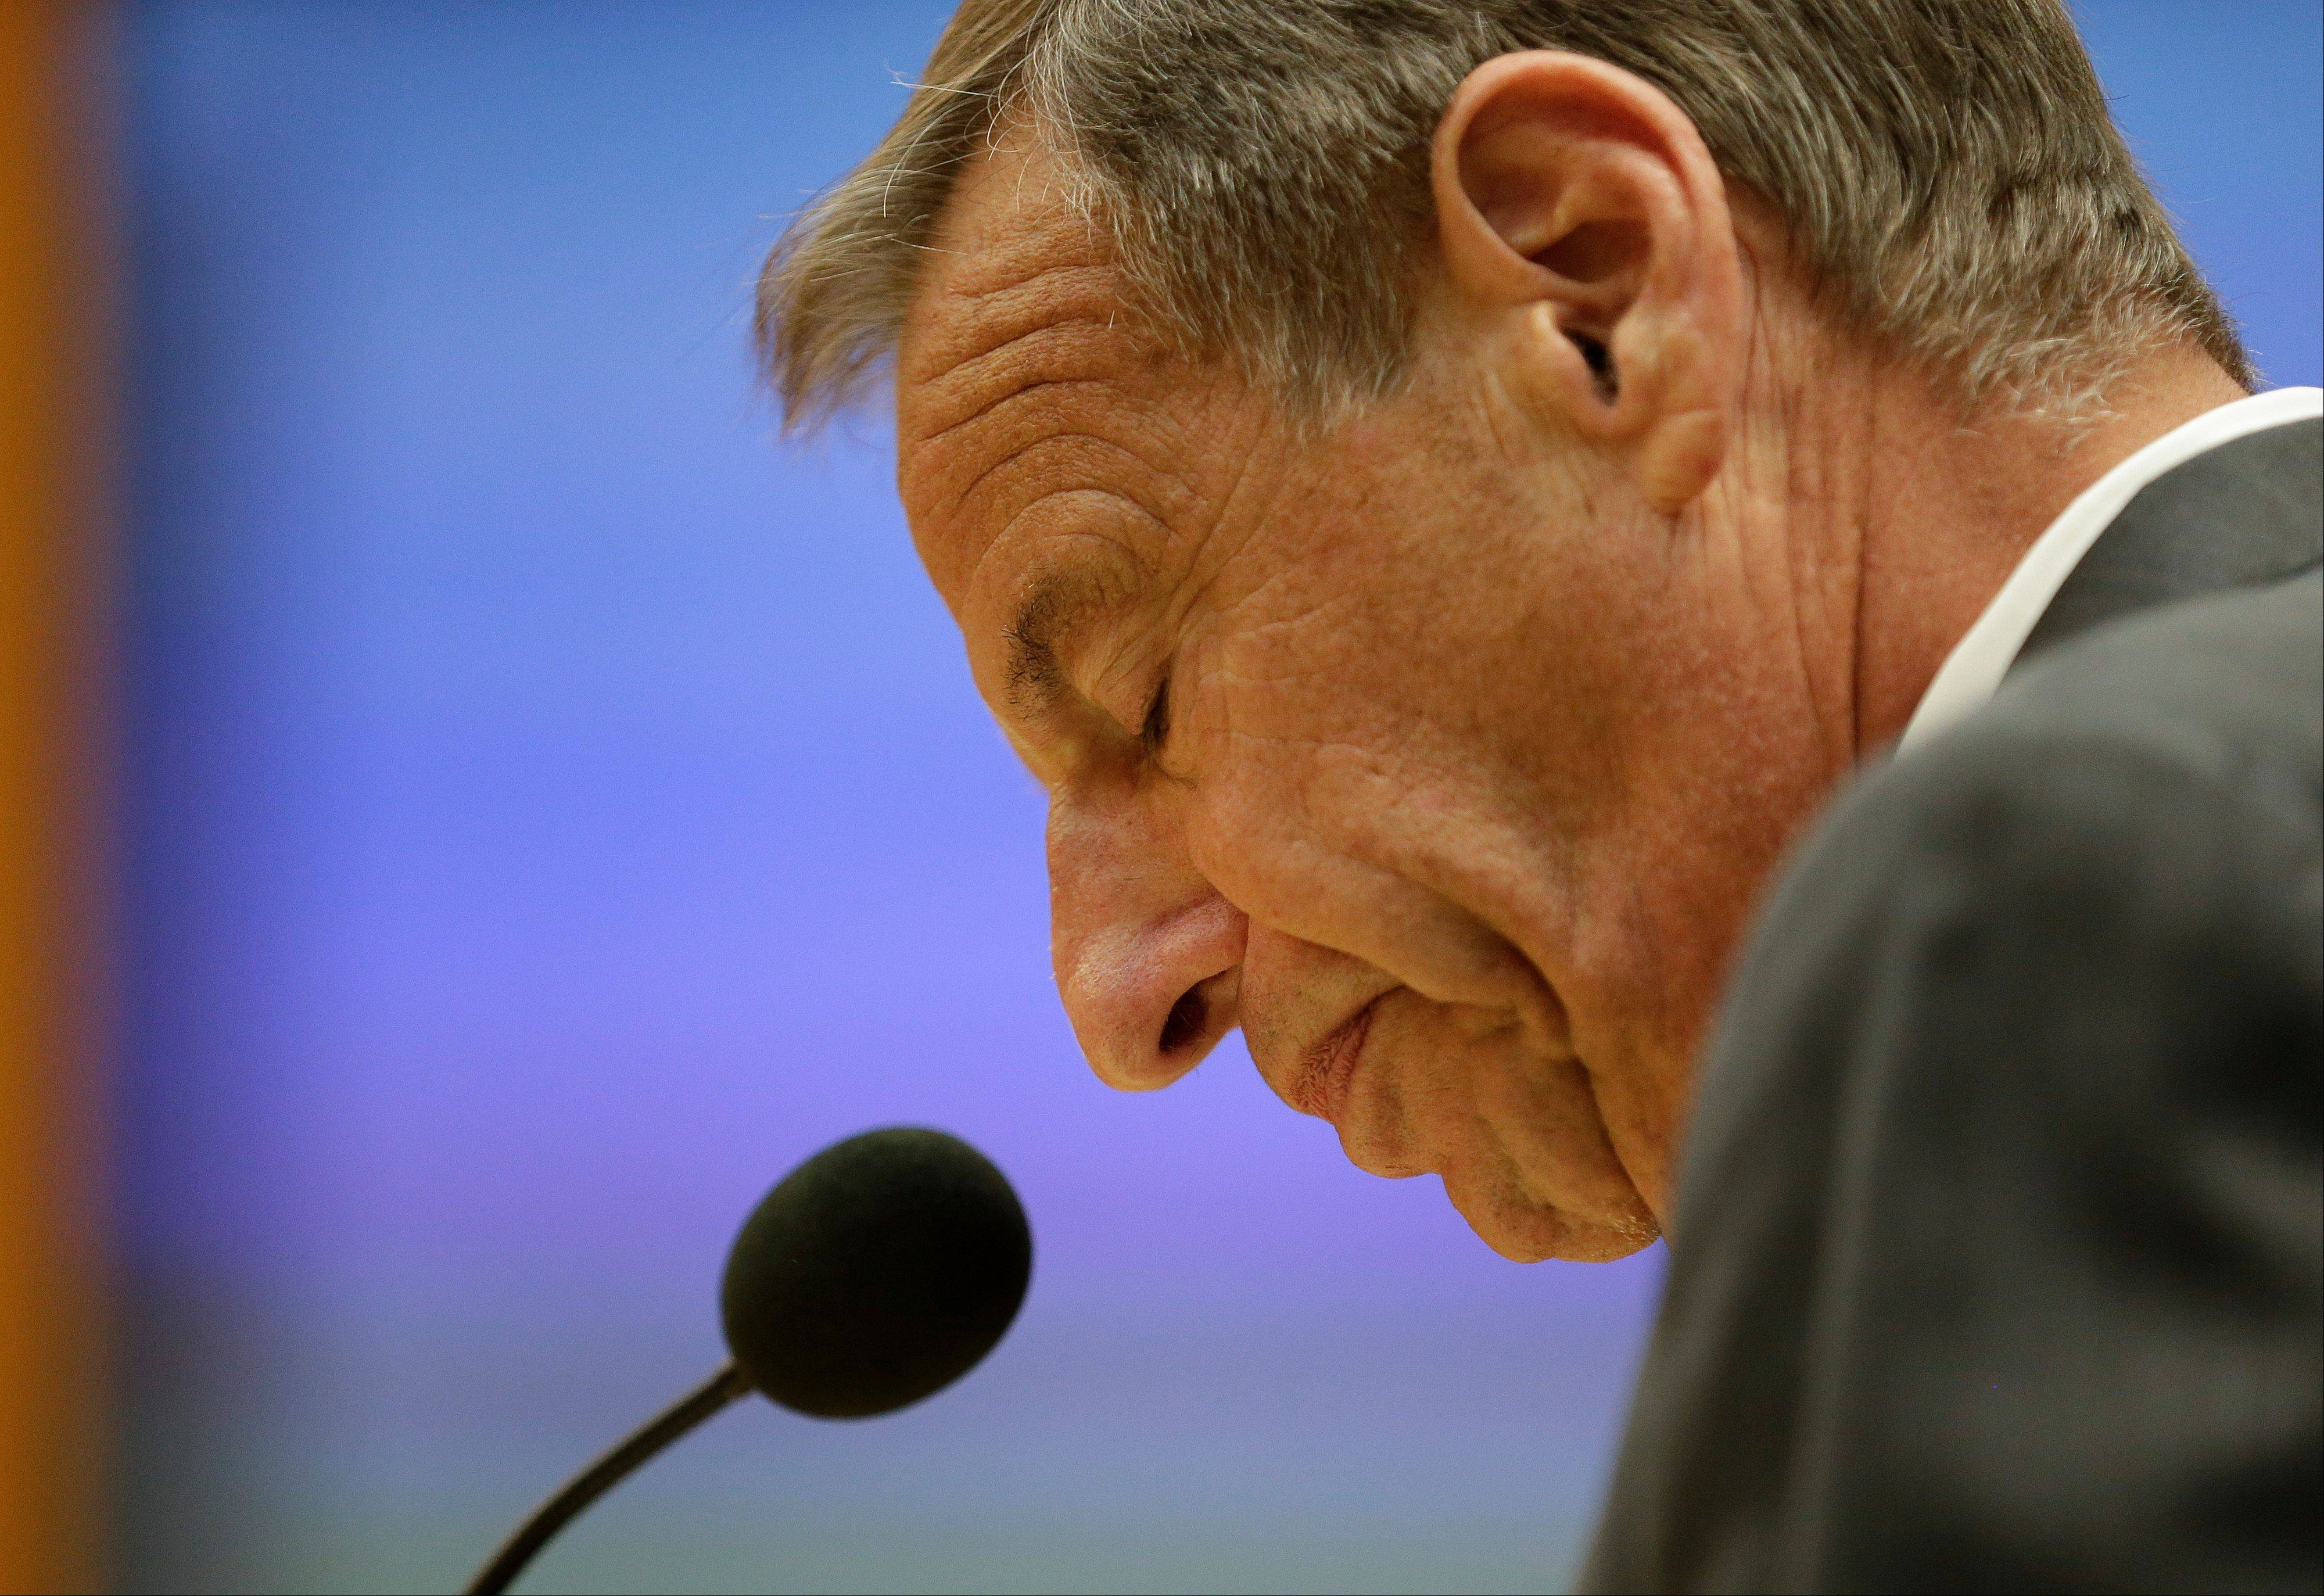 San Diego Mayor Bob Filner is leaving office in disgrace amid sexual harassment allegations and many unanswered questions, including how someone who acknowledged mistreating women for many years could have survived for so long in politics.